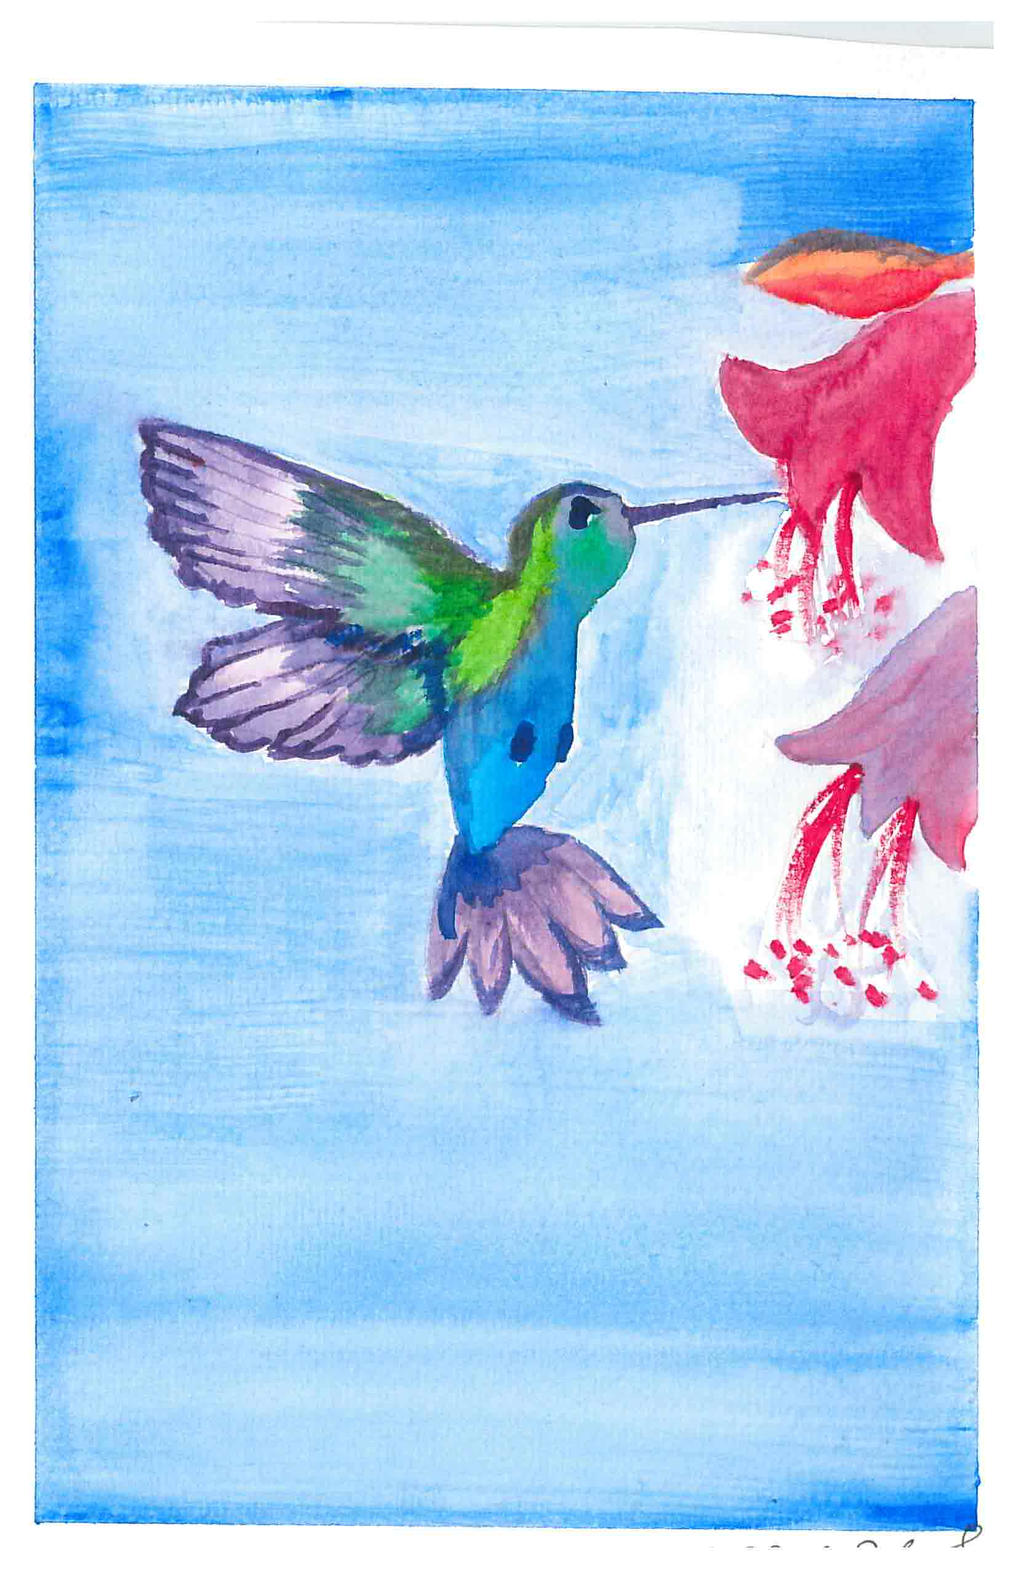 Watercolor hummingbird by vihervirveli